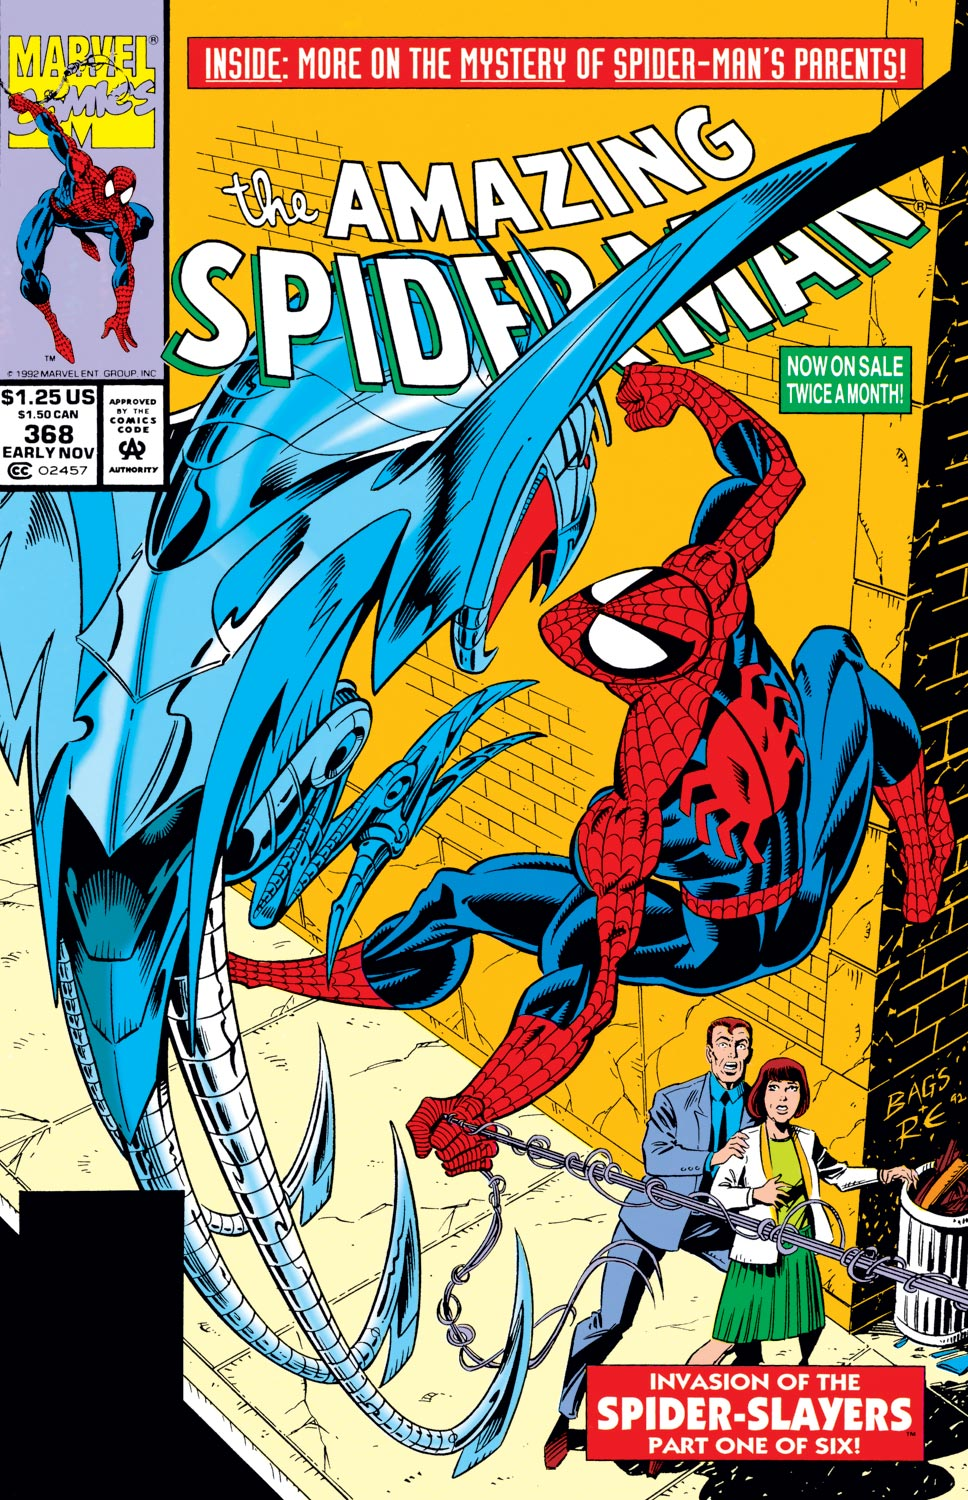 The Amazing Spider-Man (1963) #368